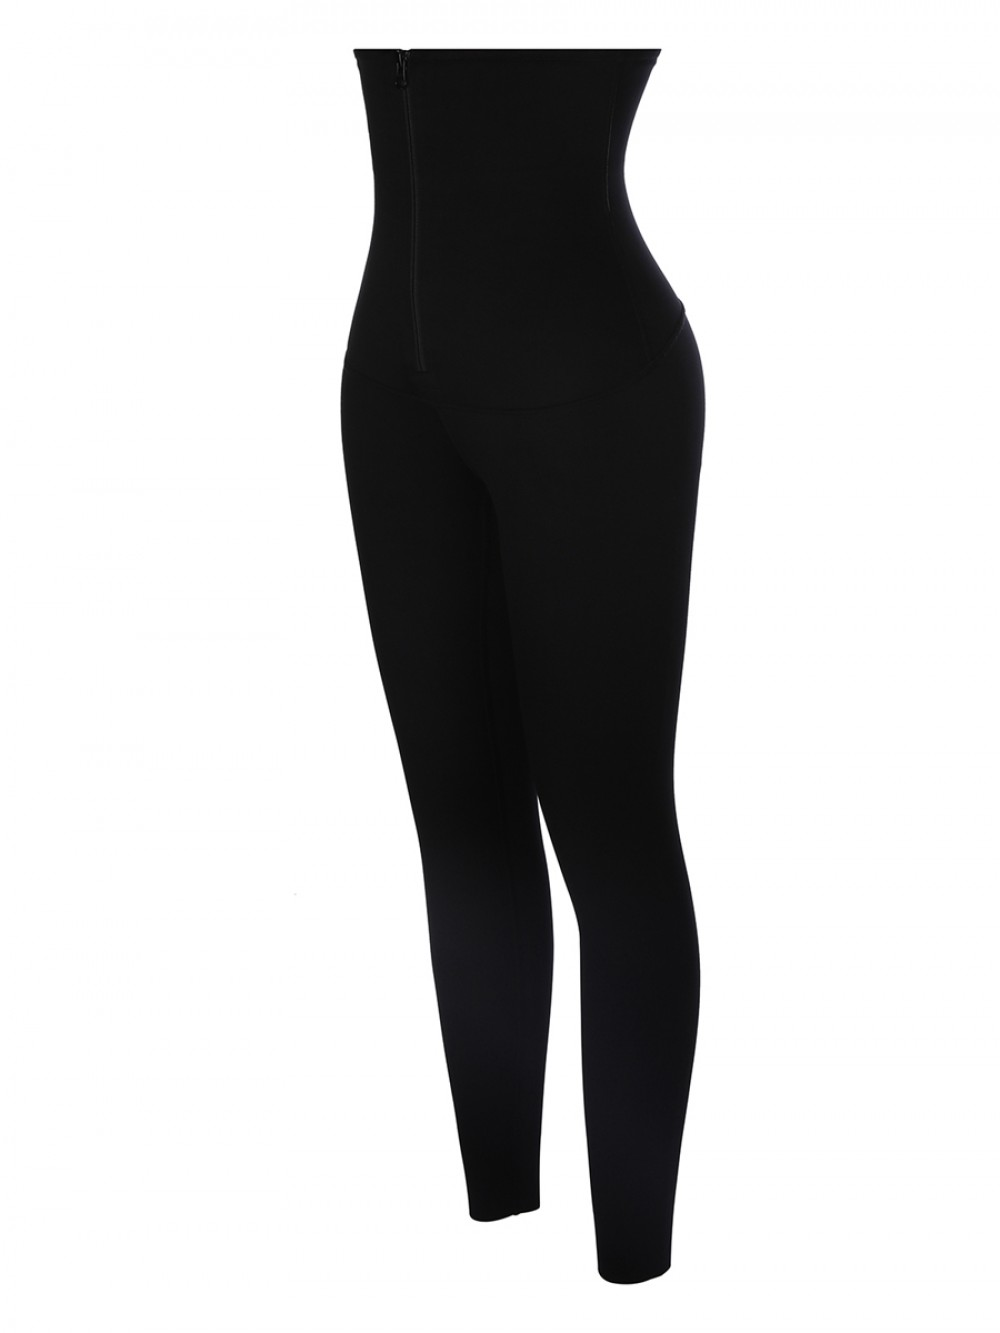 Black Waist Trainer 2-In-1 Leggings With Zipping Firm Compression